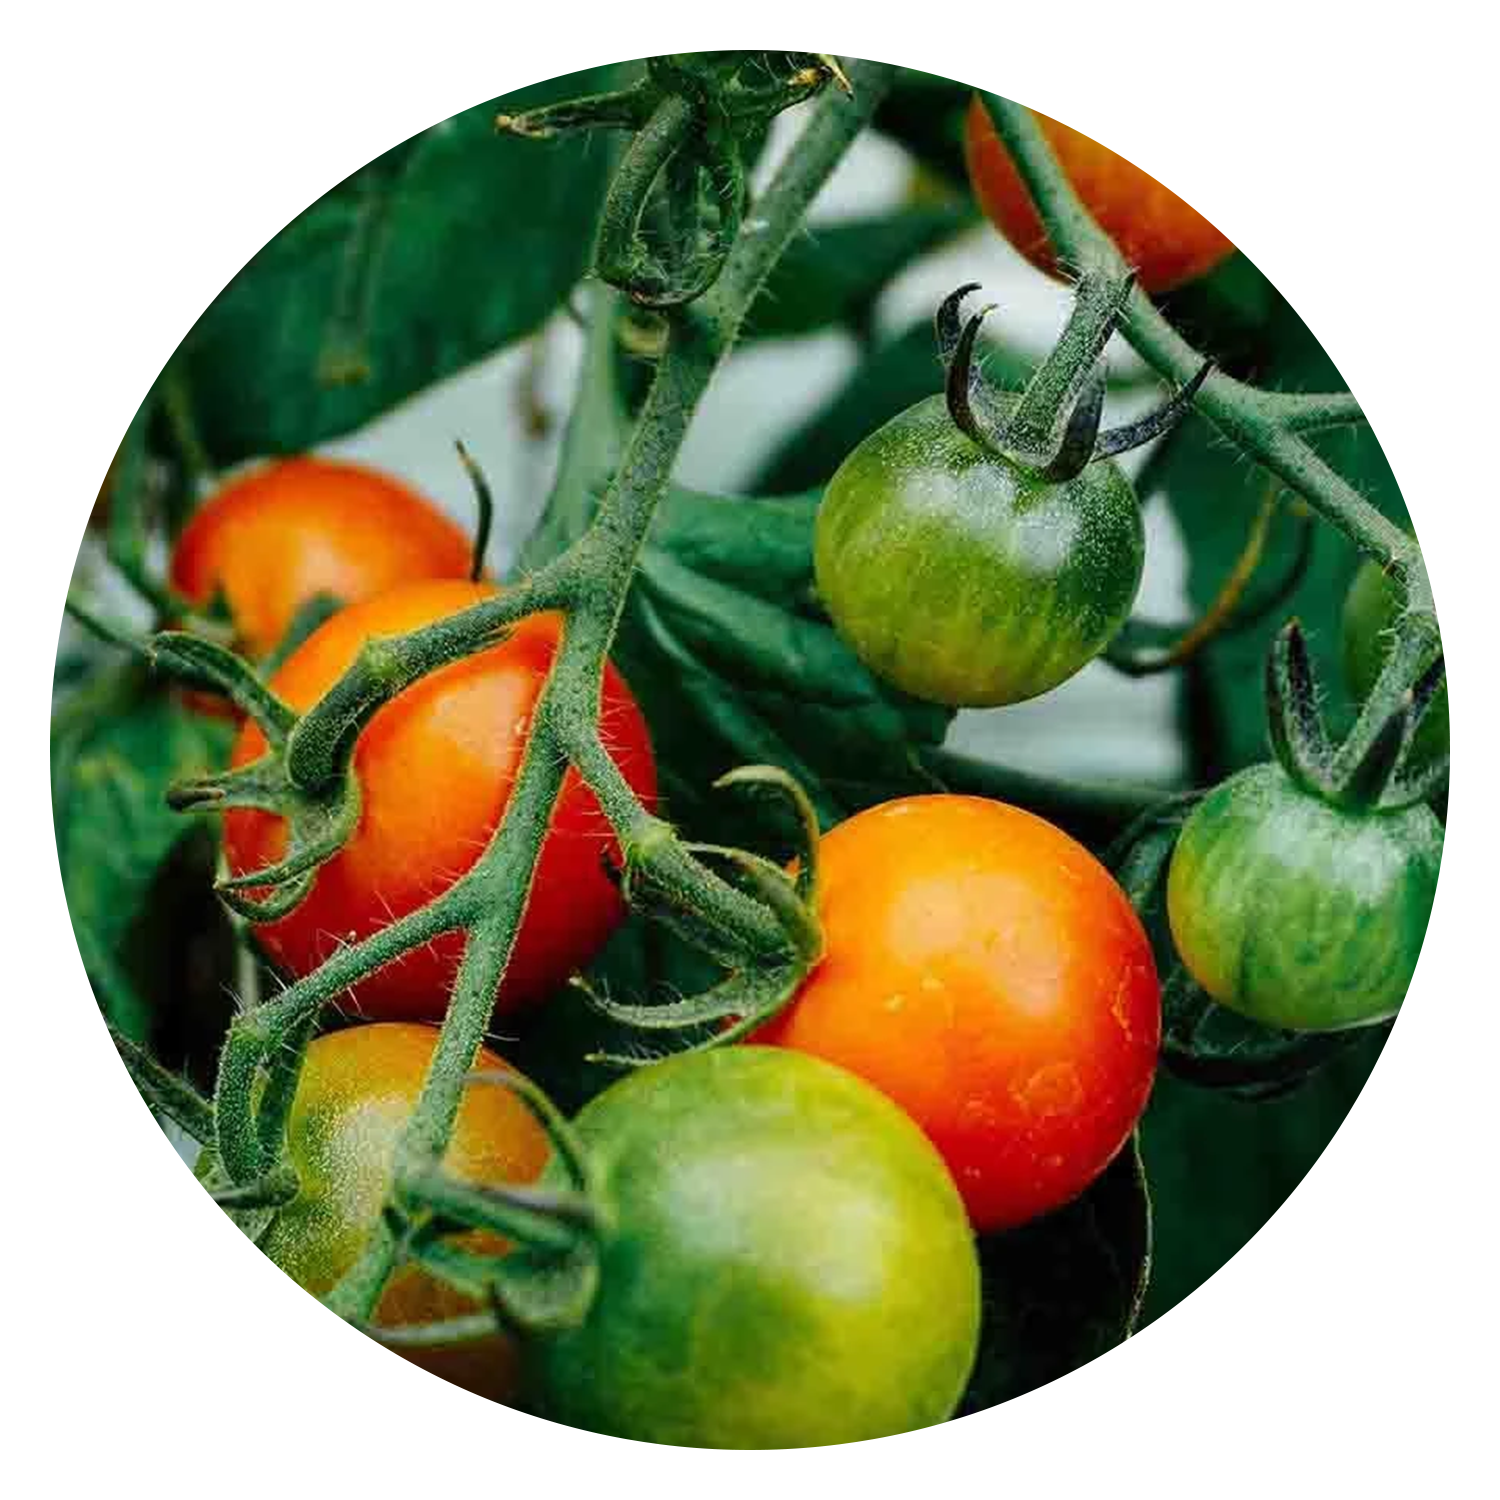 Large Red Cherry Tomato Seeds, link to product page.